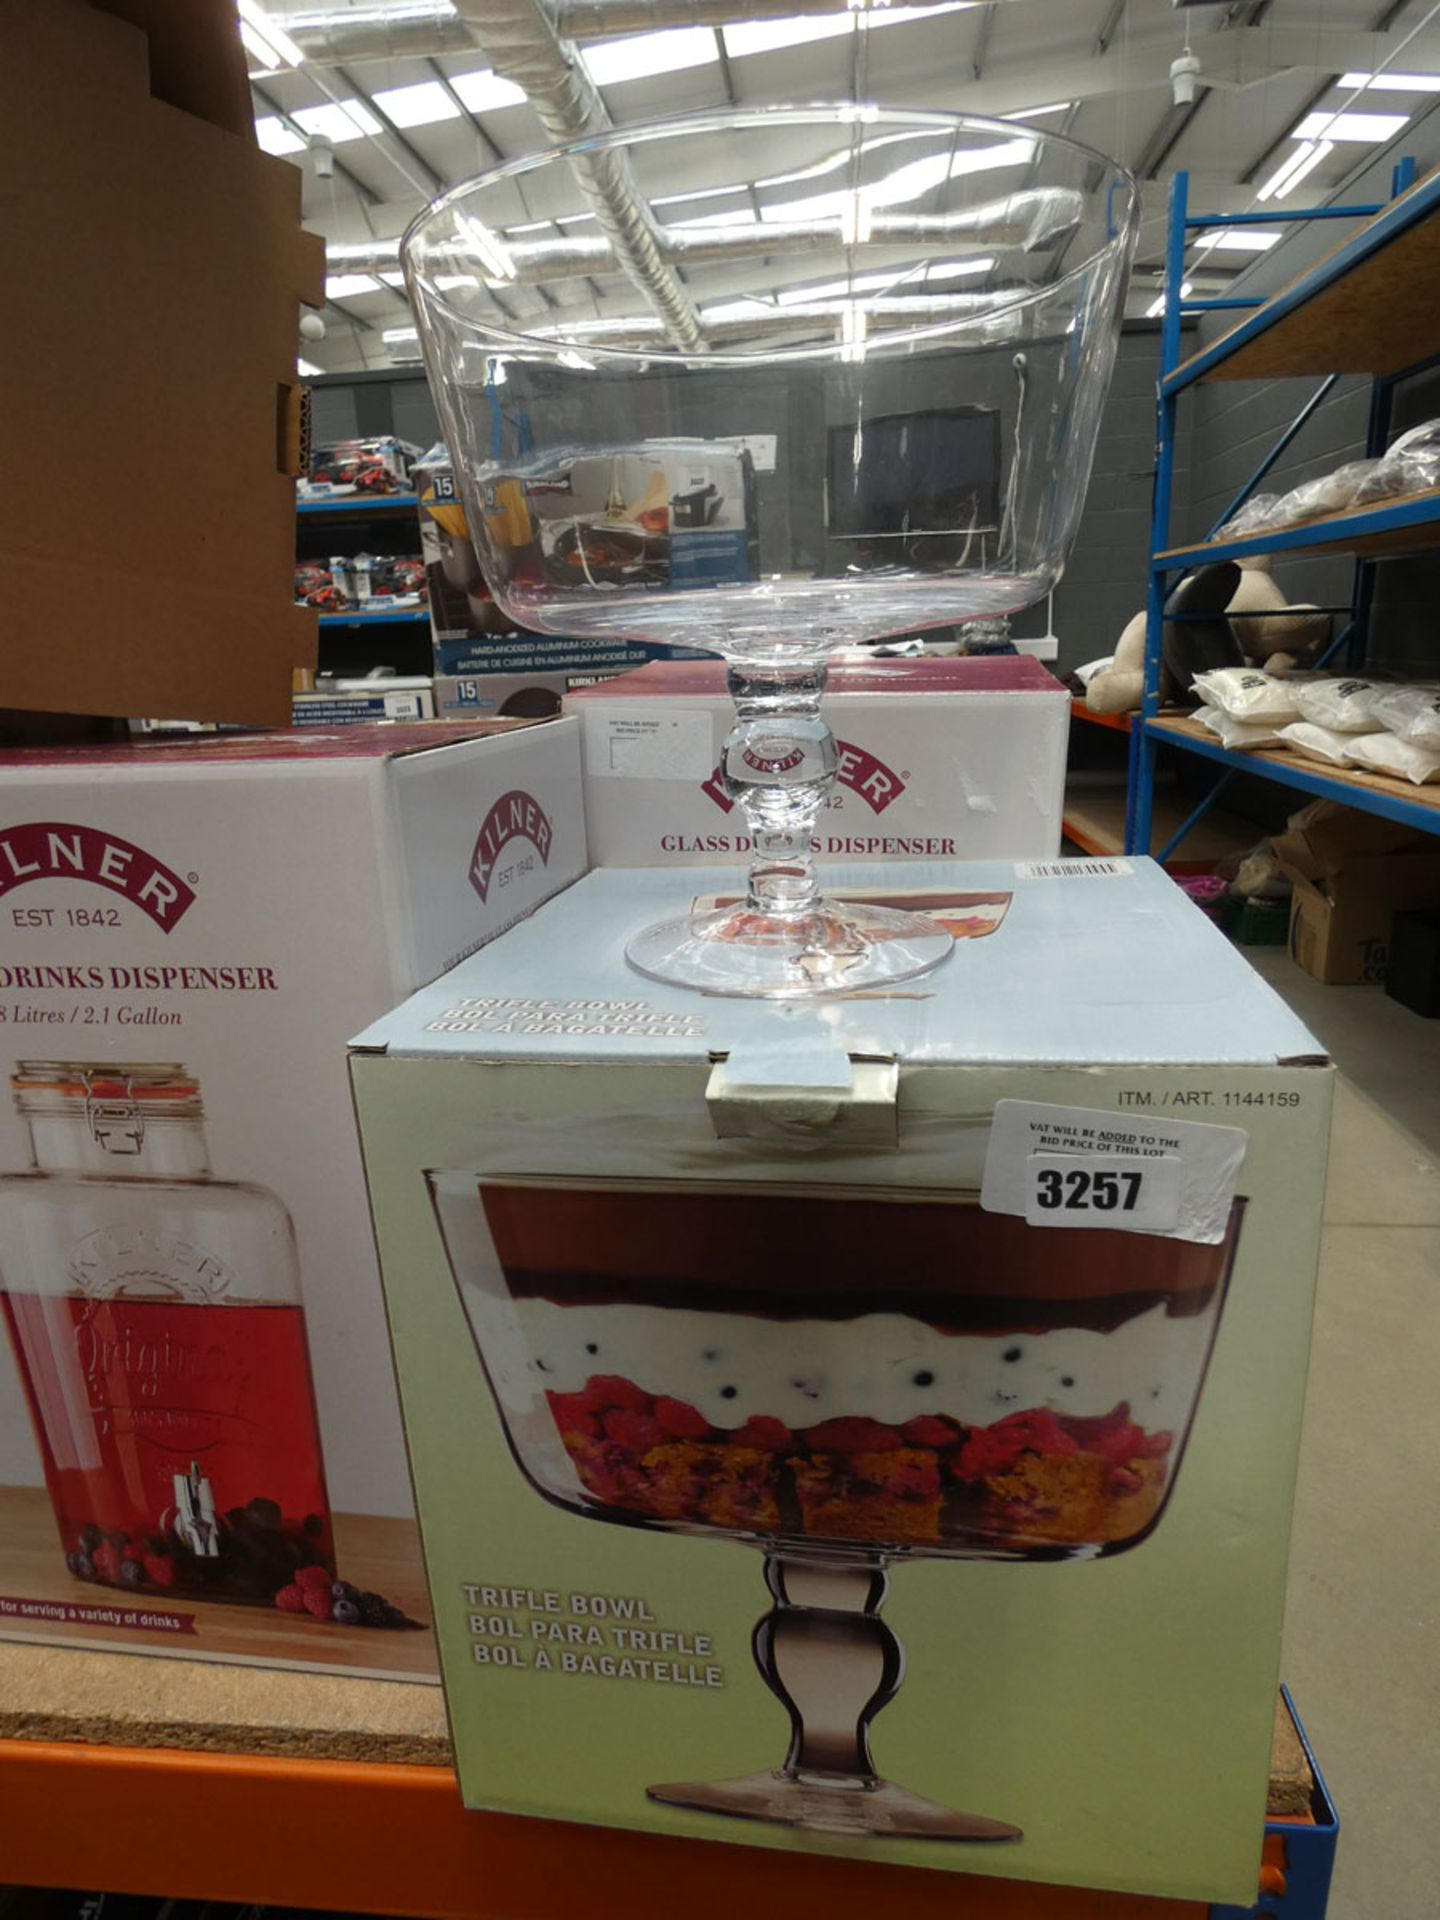 3062 - Boxed trifle bowl and a Kilner glass drinks dispenser